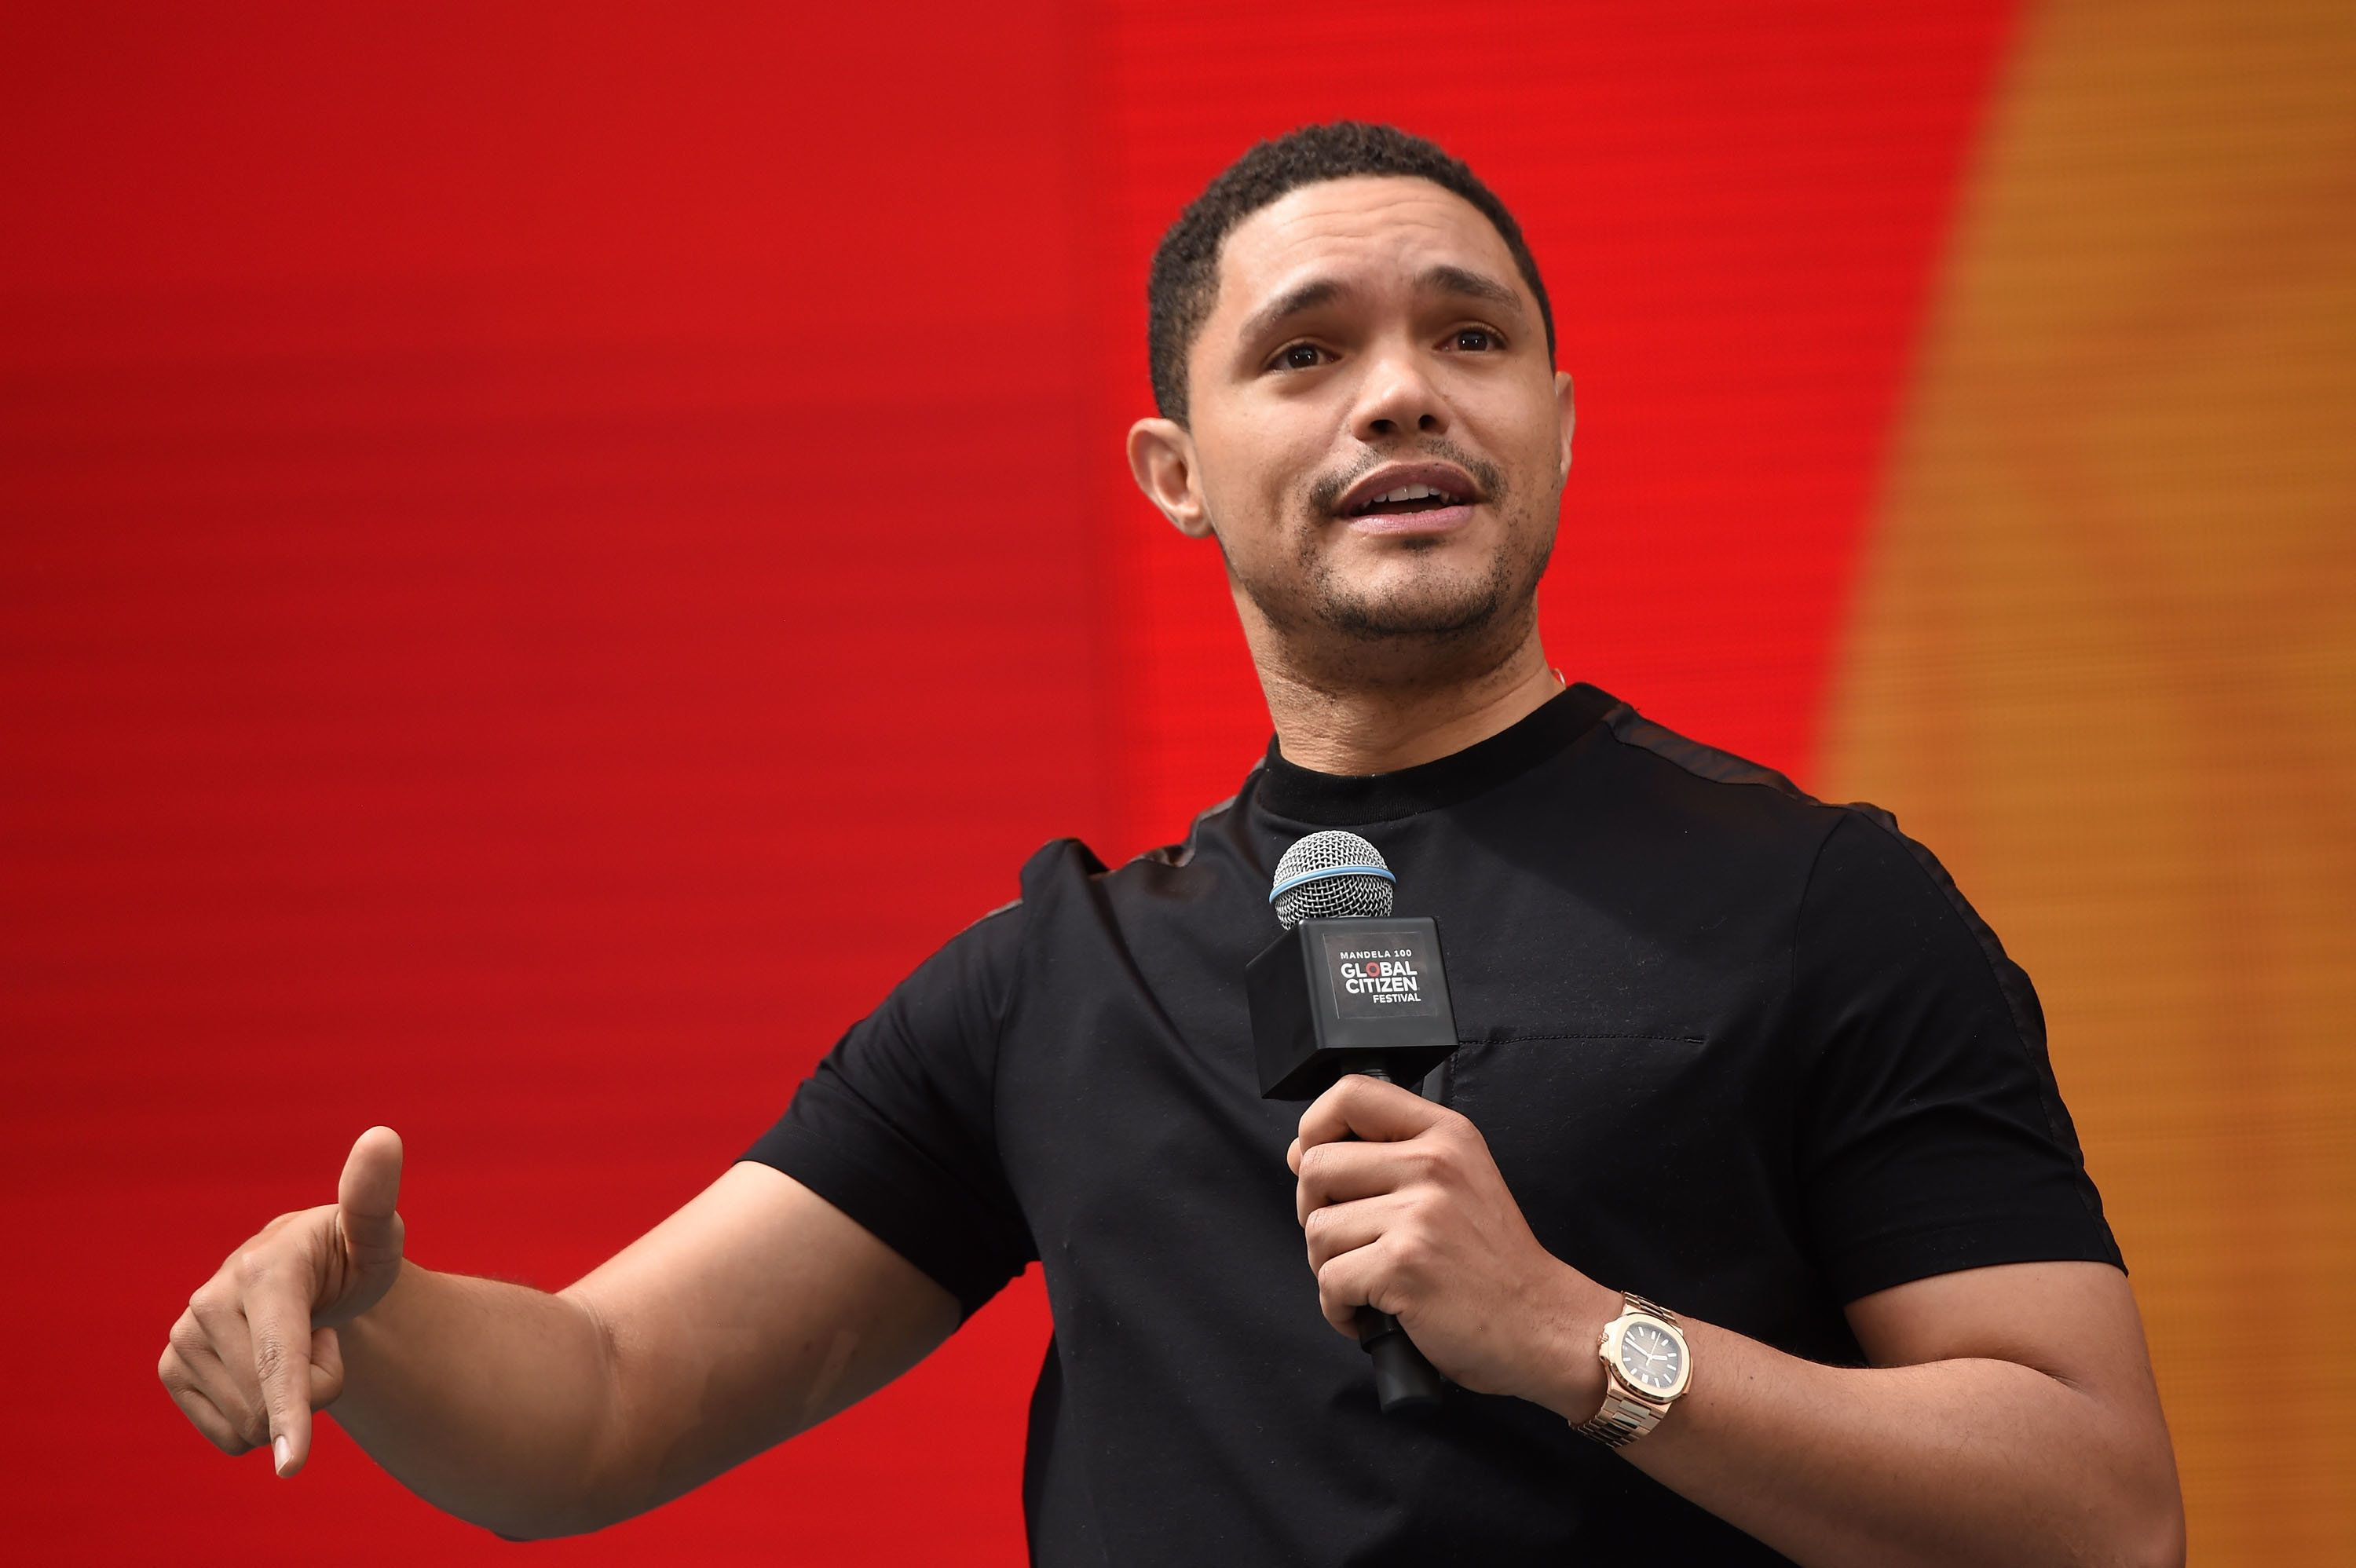 JOHANNESBURG, SOUTH AFRICA - DECEMBER 02:  Trevor Noah speaks on stage during the Global Citizen Festival: Mandela 100 at FNB Stadium on December 2, 2018 in Johannesburg, South Africa.  (Photo by Kevin Mazur/Getty Images for Global Citizen Festival: Mandela 100)